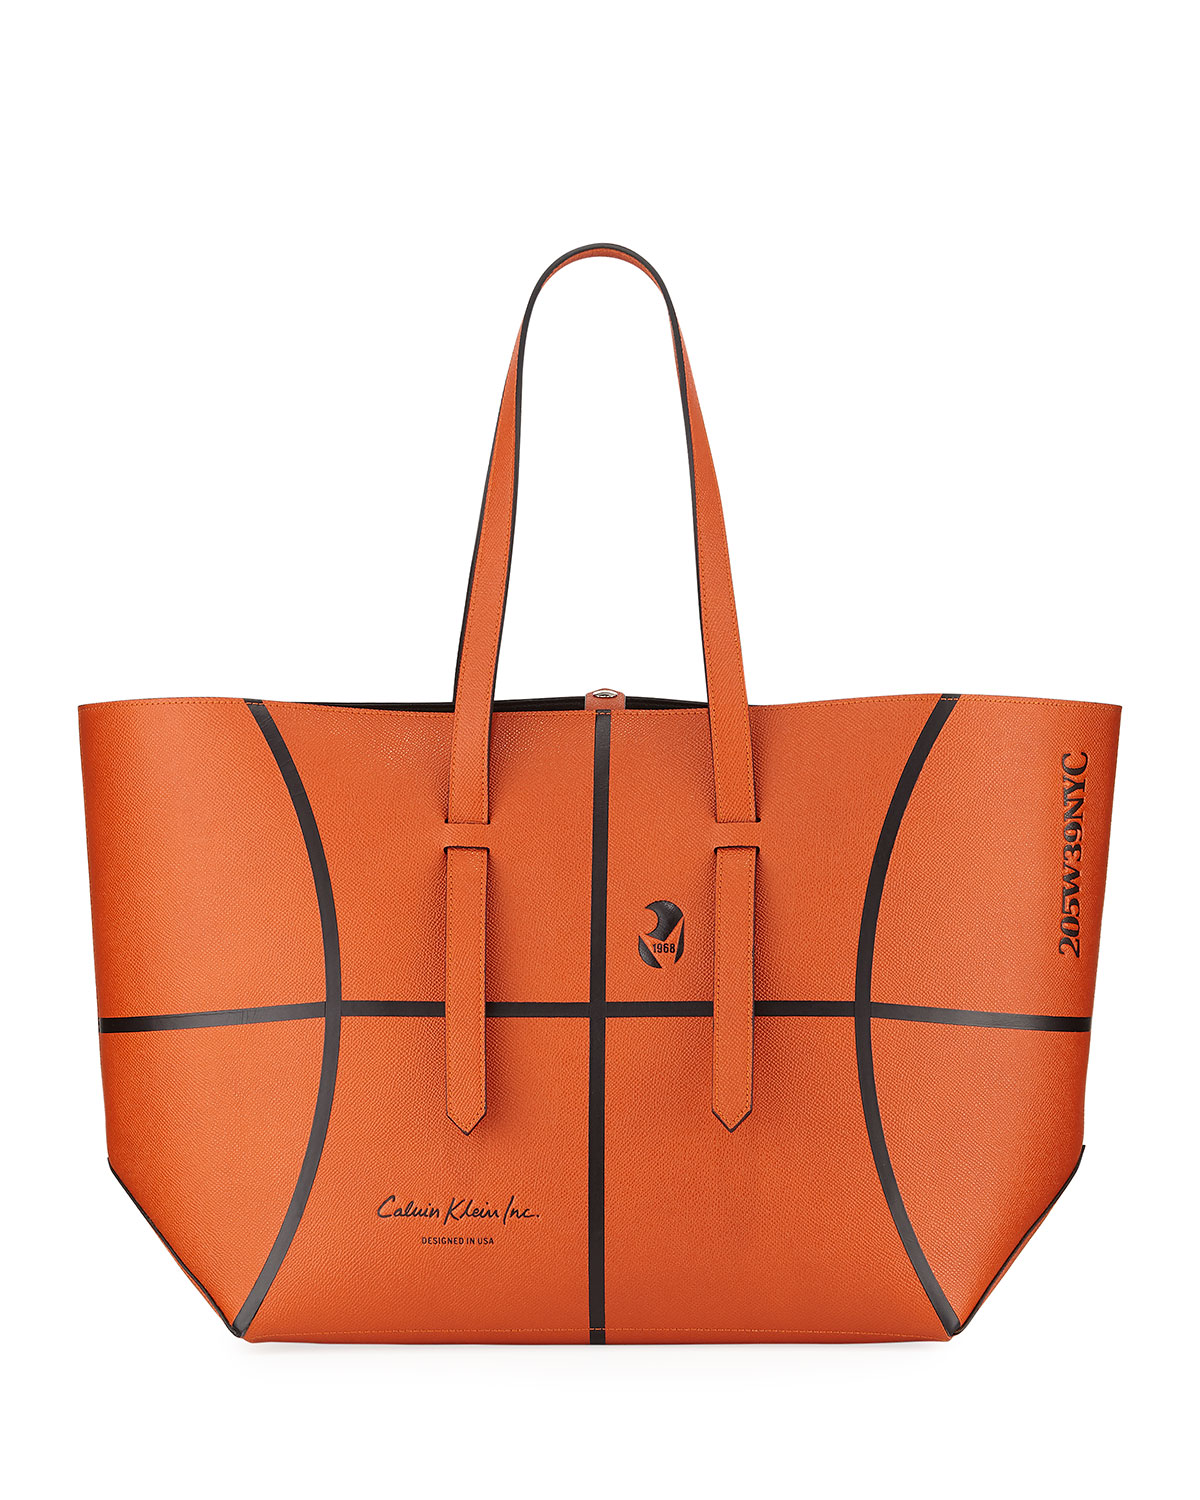 17e97ad9d0 CALVIN KLEIN 205W39NYC The Catch Basketball Tote Bag   Neiman Marcus